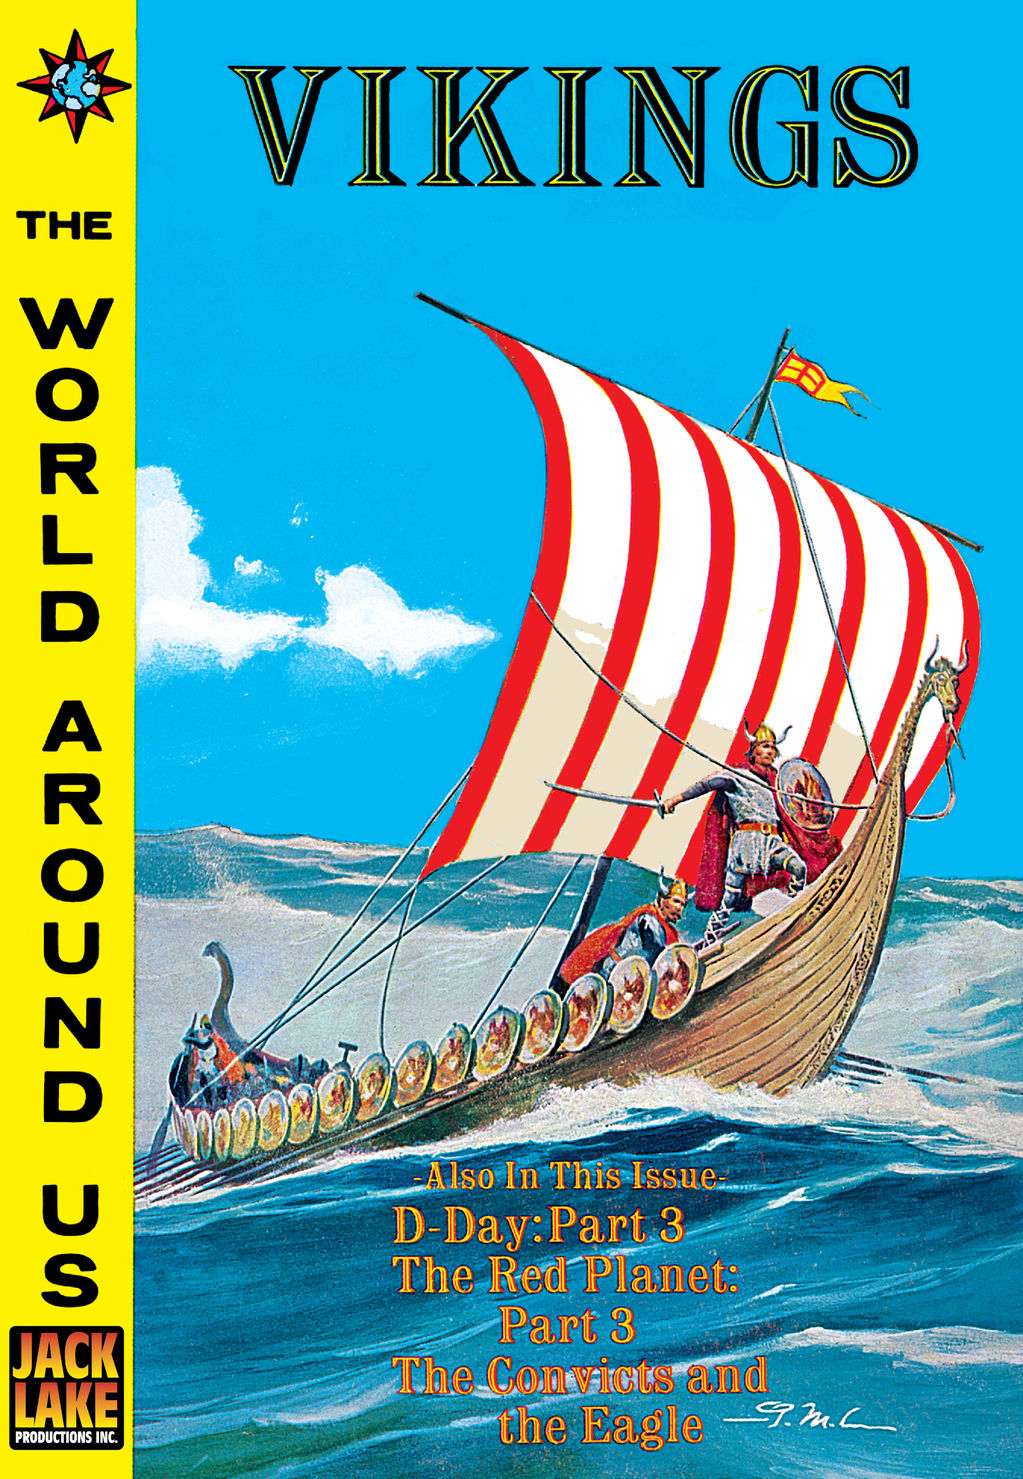 The Vikings - The World Around Us #W29